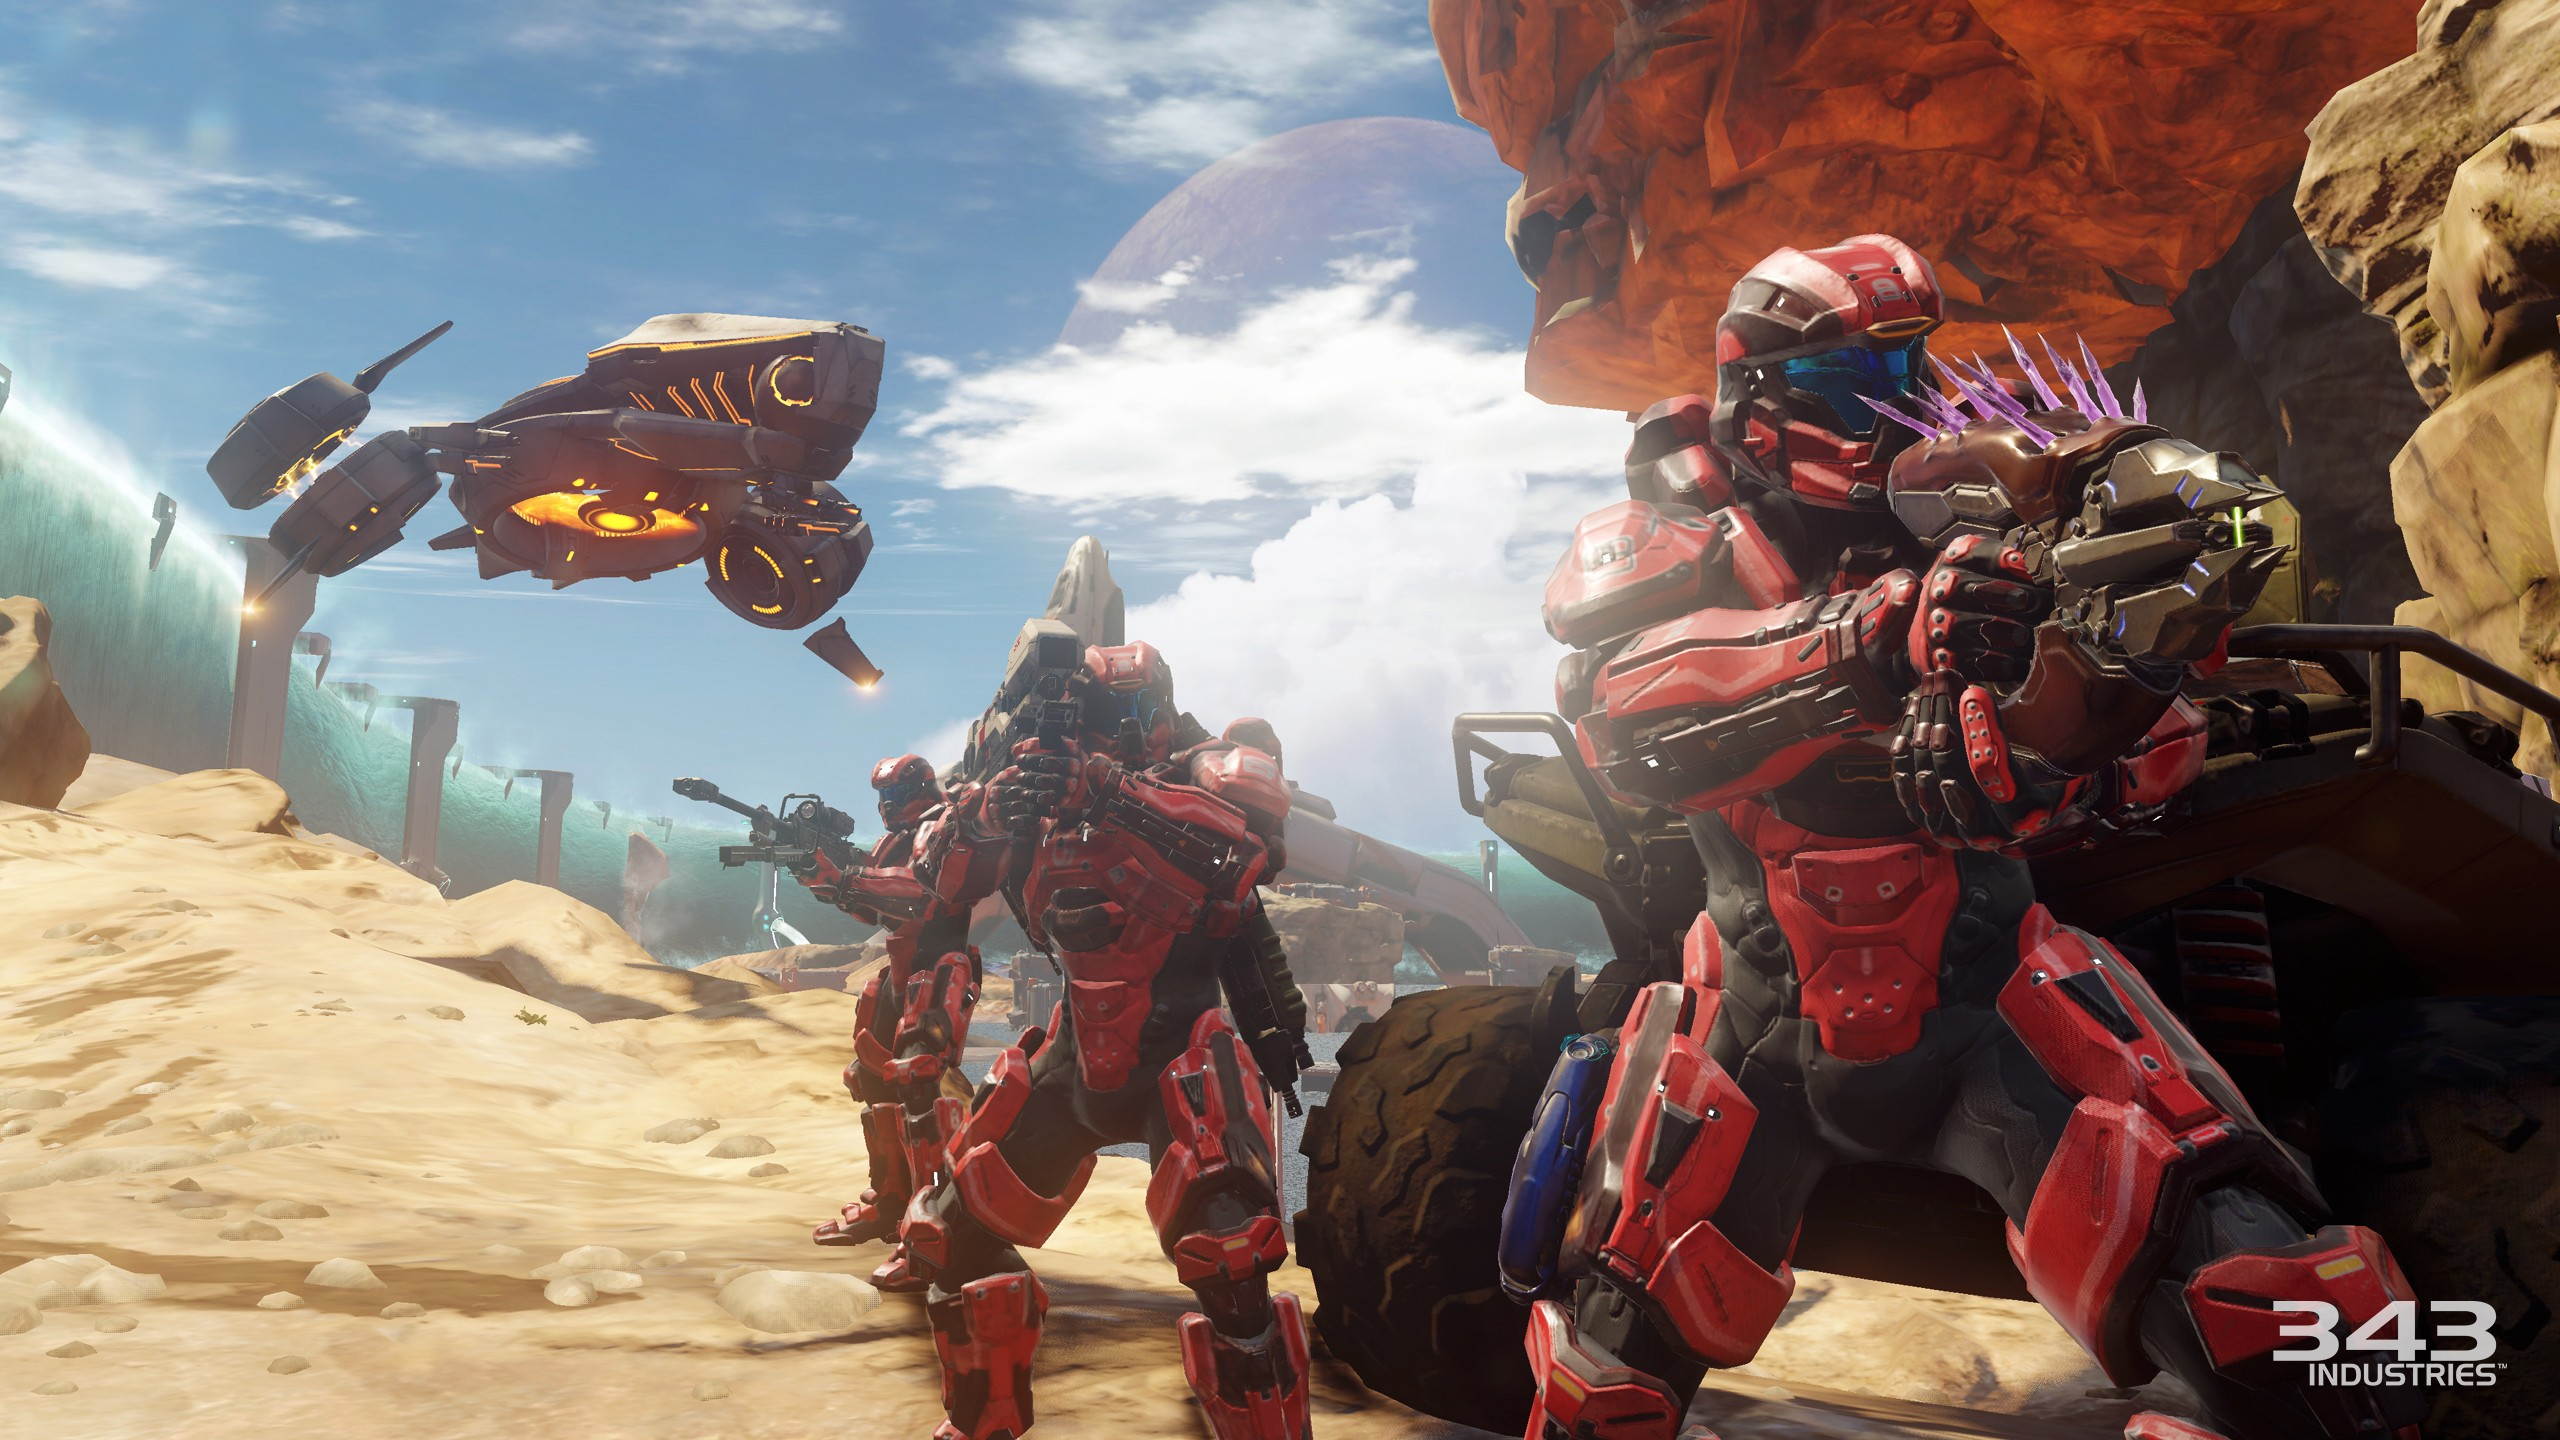 Halo 5: Guardians Has Pre-Order Install Issues, Fans Criticize Warzone